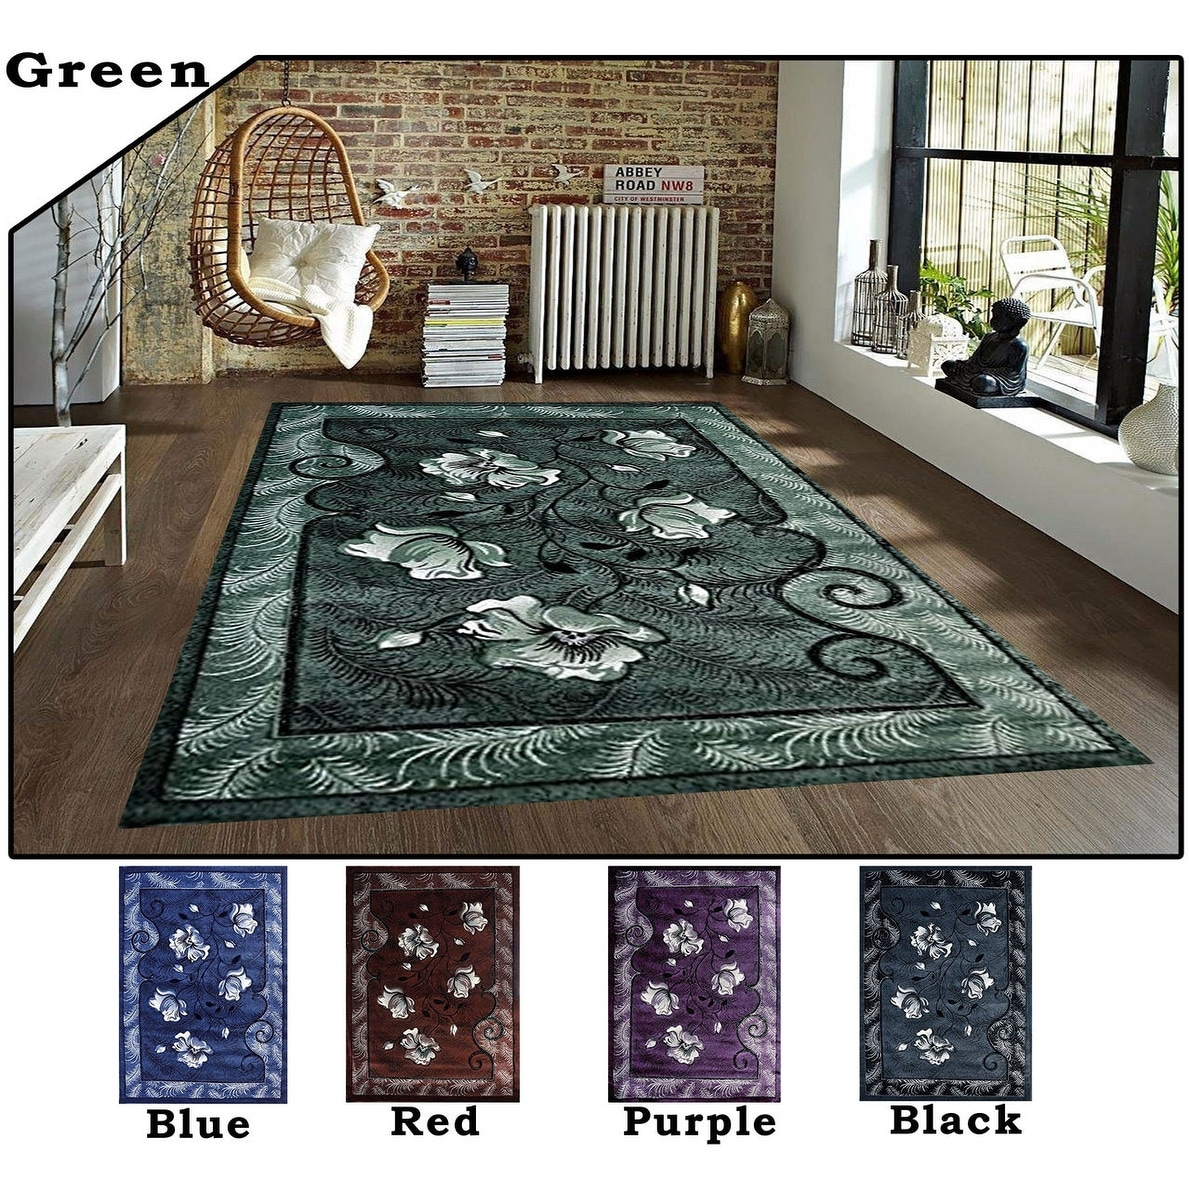 5 3x7 2 Rug Area Rug Carpet Green Black Purple Red Blue Modern Contemporary Polyester Hand Carved Living Room Bed Room Overstock 11979910